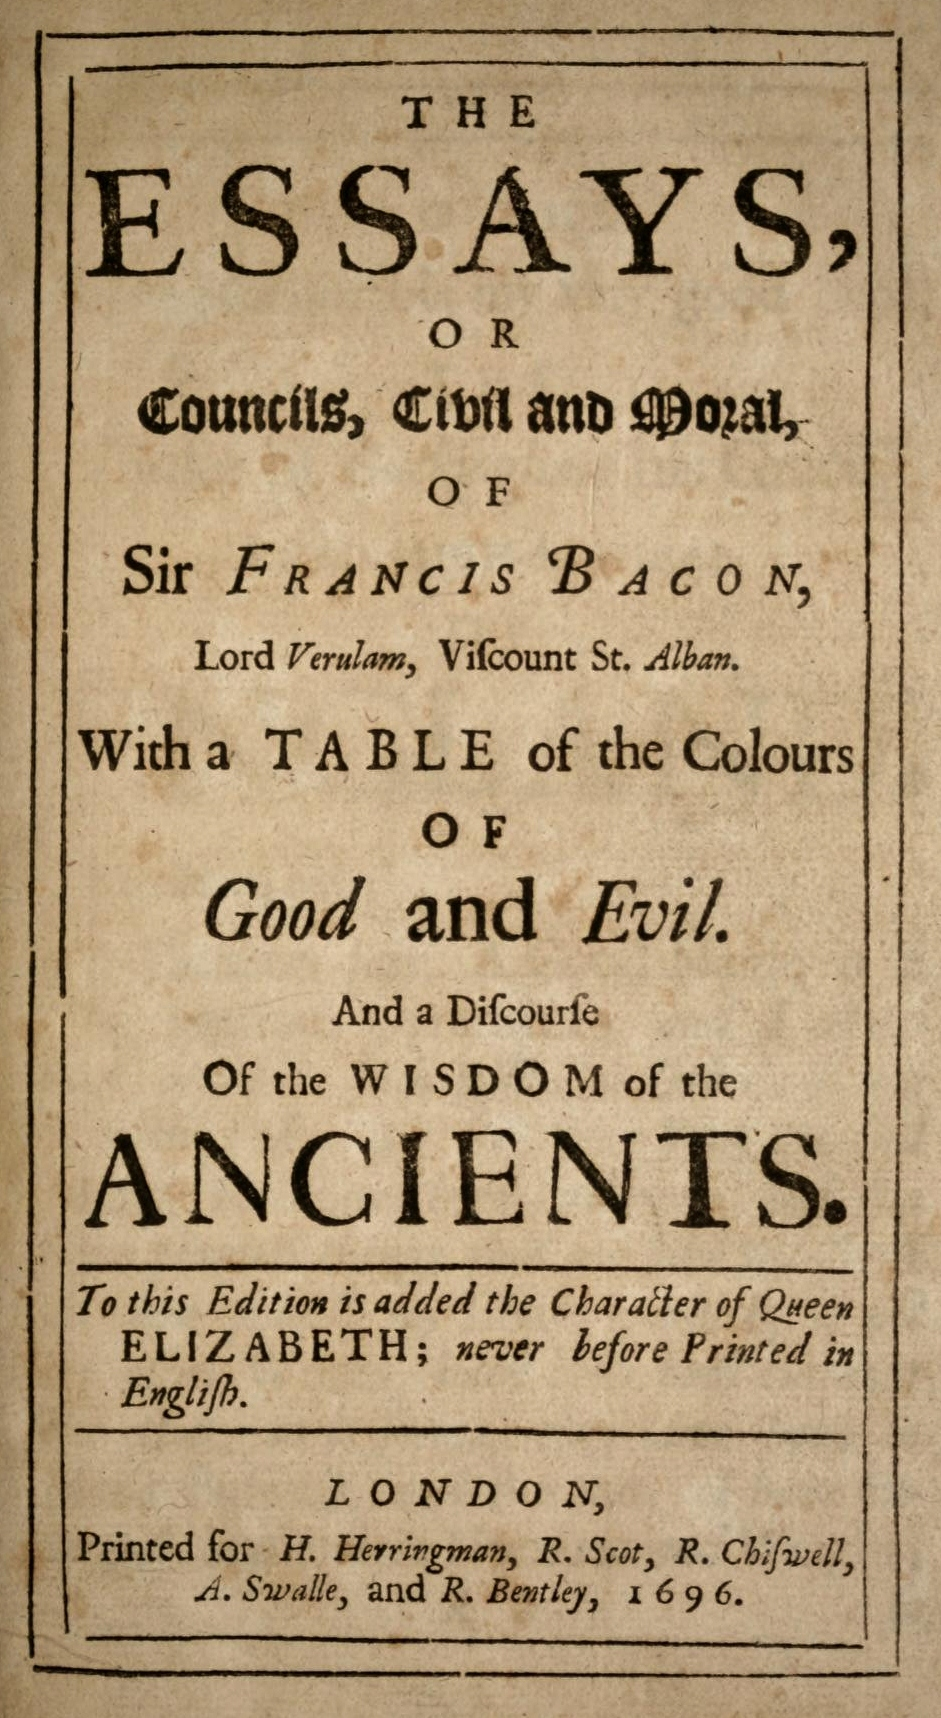 001 Essay Example Francis Bacon Essays 1696 Awesome Analysis Pdf Of Truth Download Critical Appreciation Bacon's Full